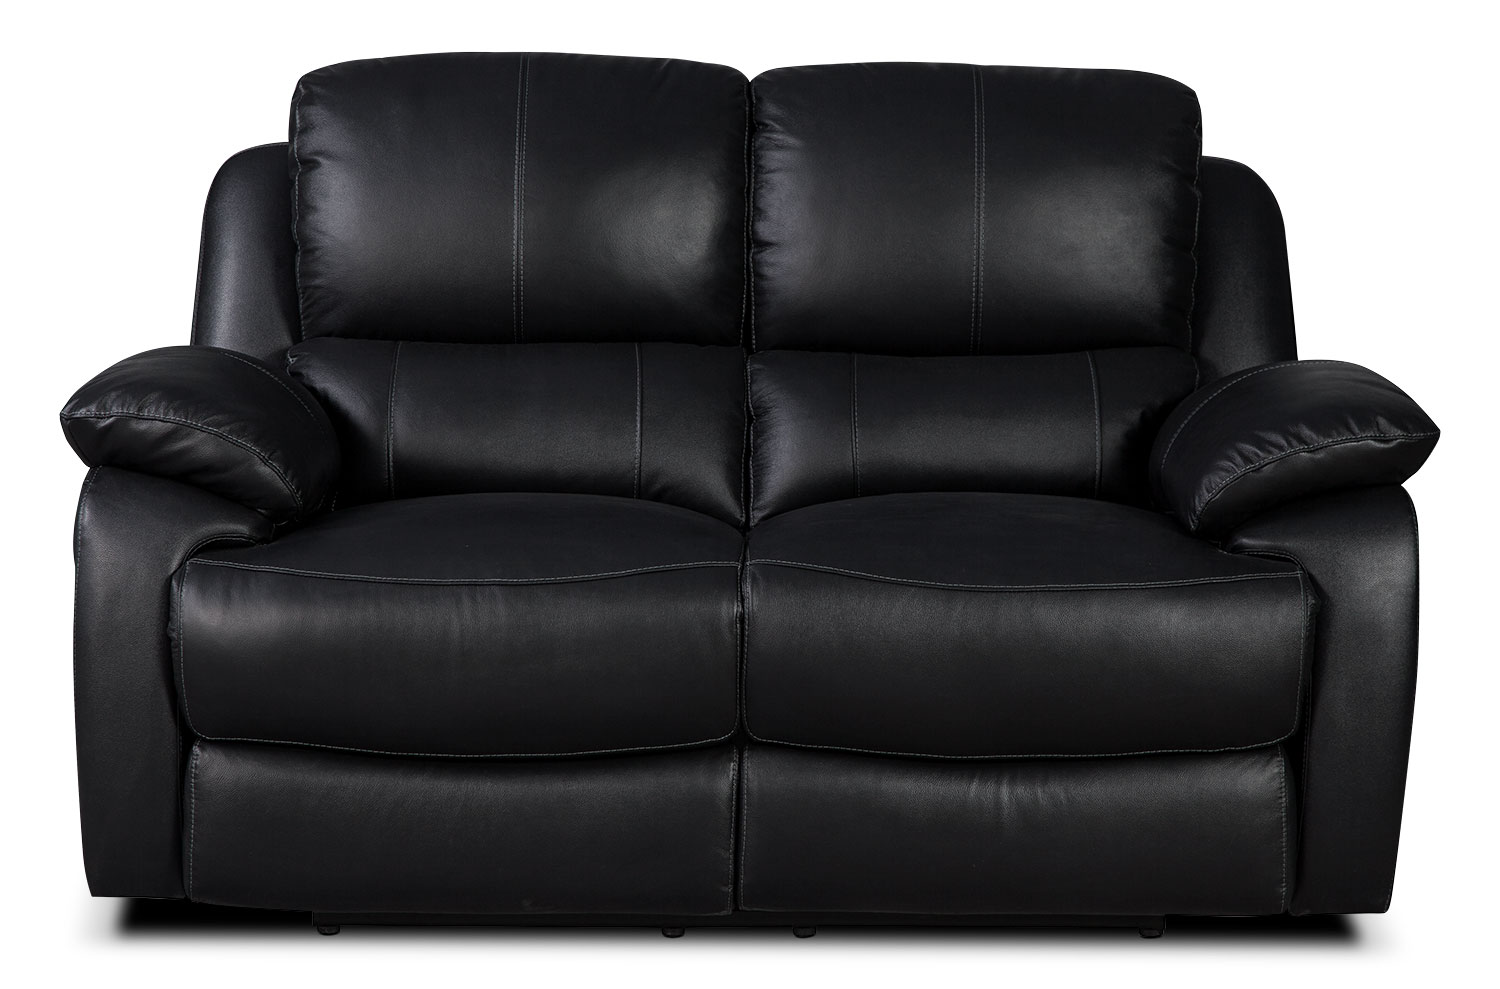 Living Room Furniture - Cairo Genuine Leather Reclining Loveseat – Black